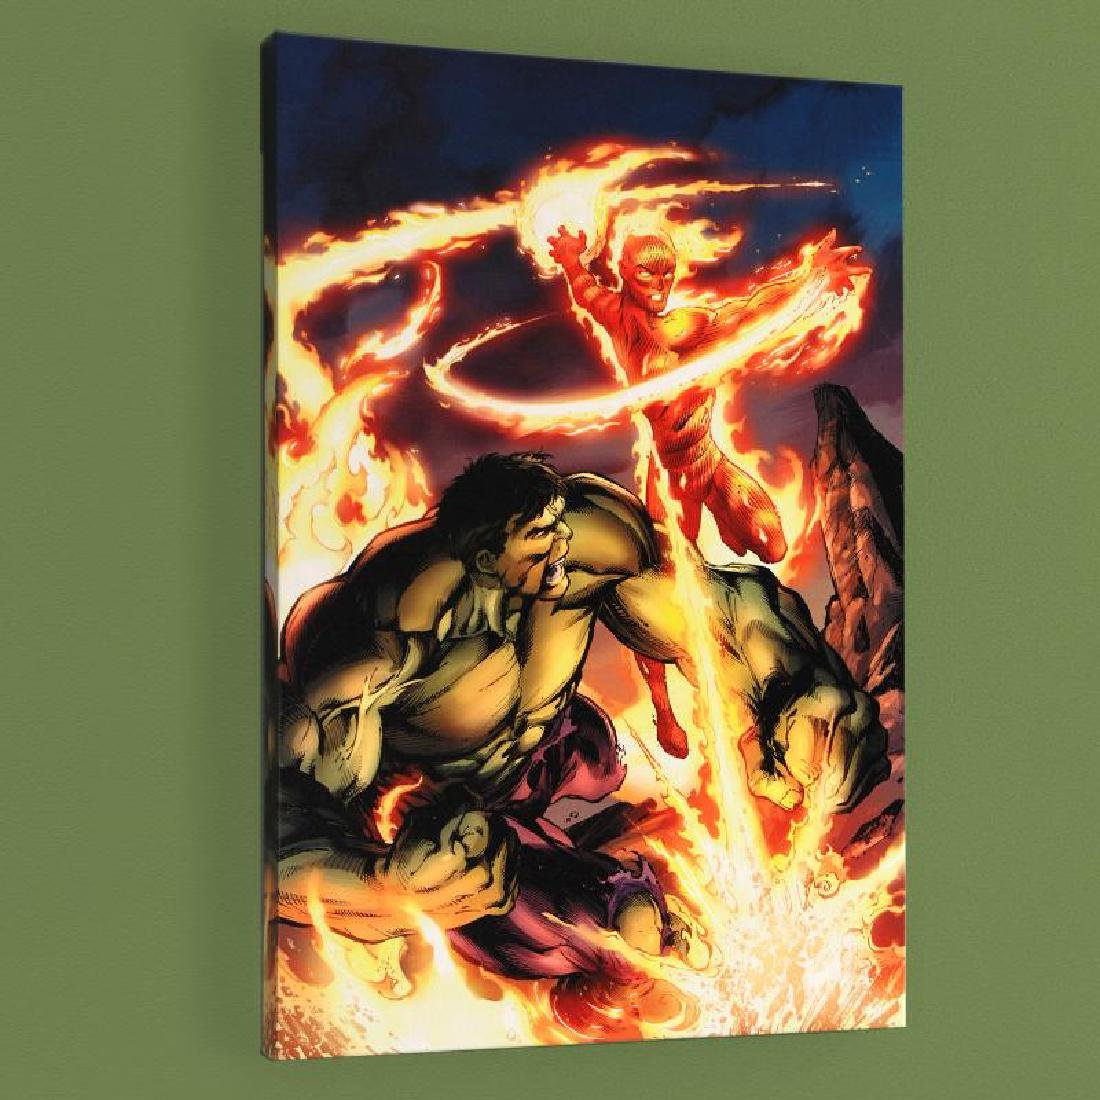 Incredible Hulk & The Human Torch: From the Marvel